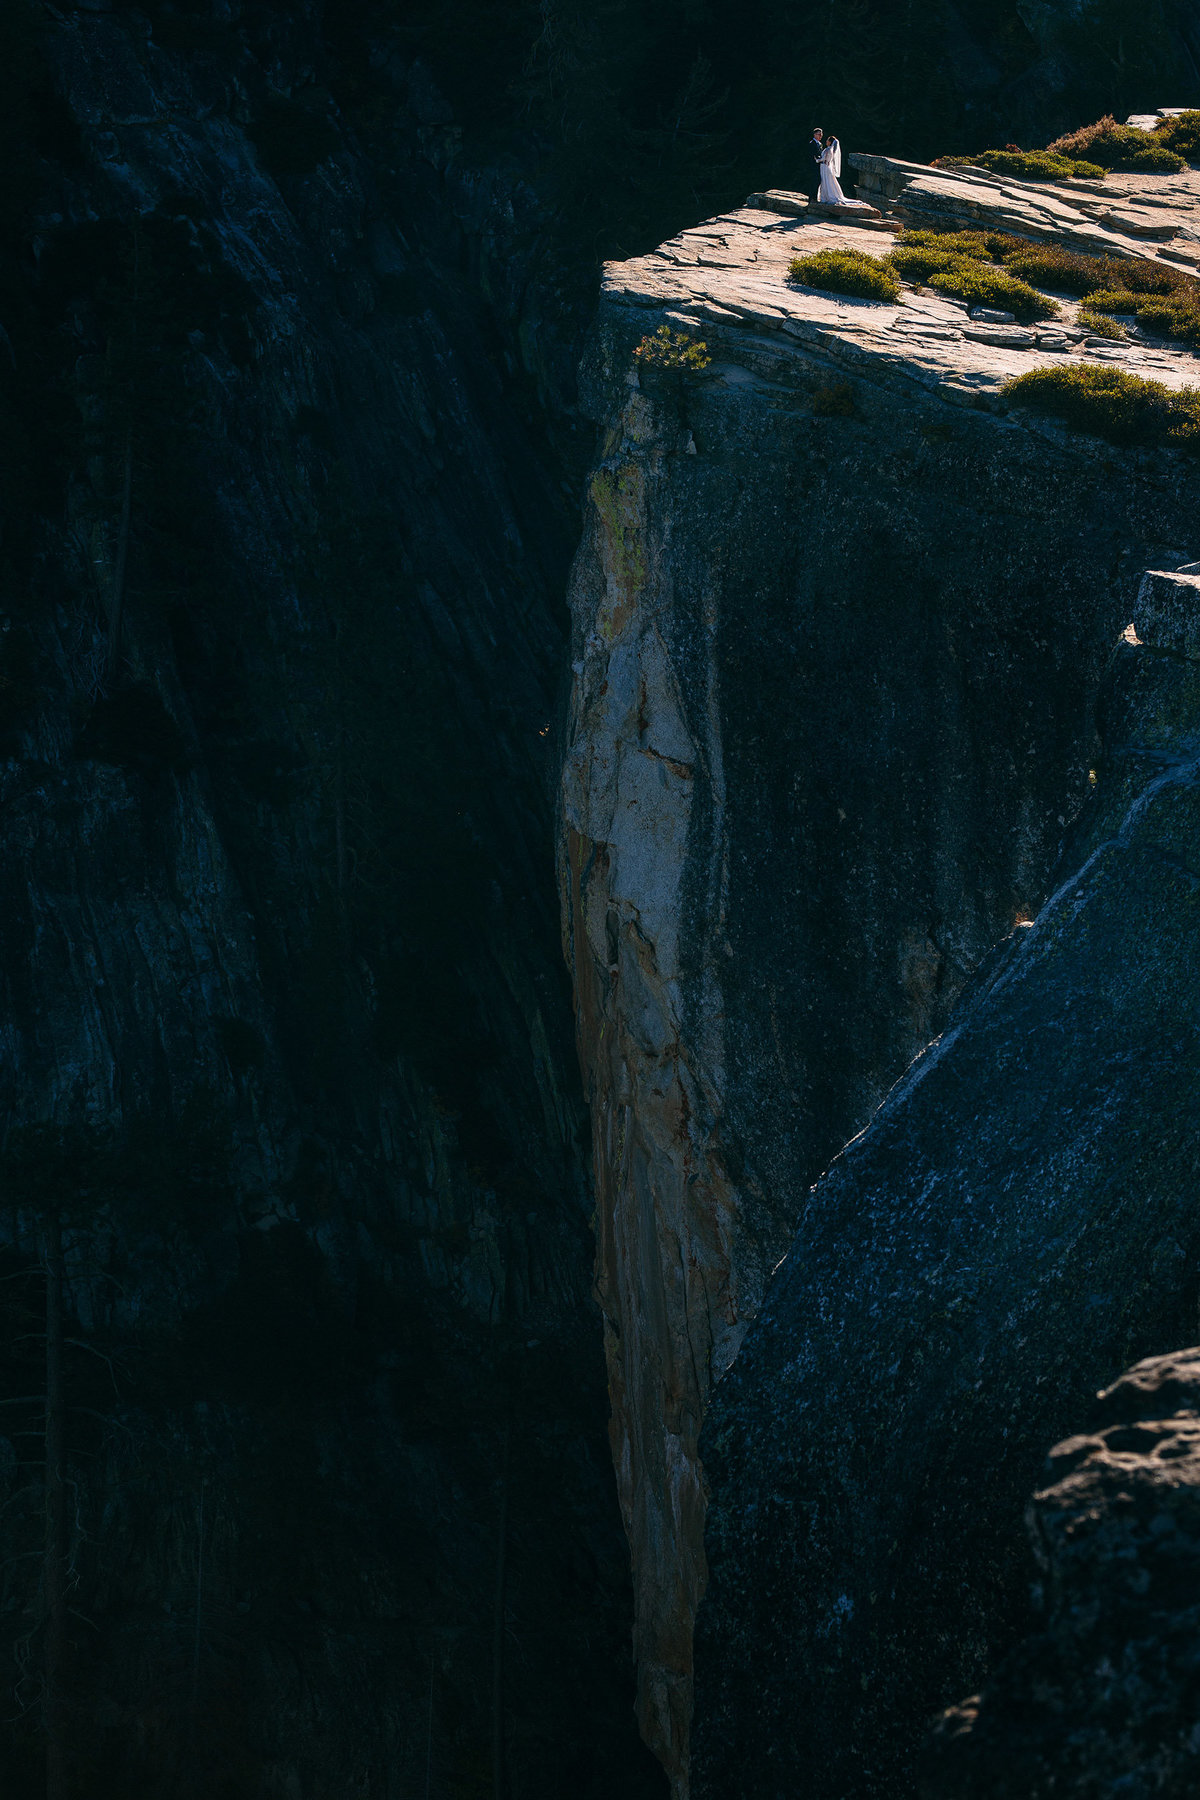 Bride & groom embrace after their sunrise wedding on Taft Point in Yosemite, Ca.